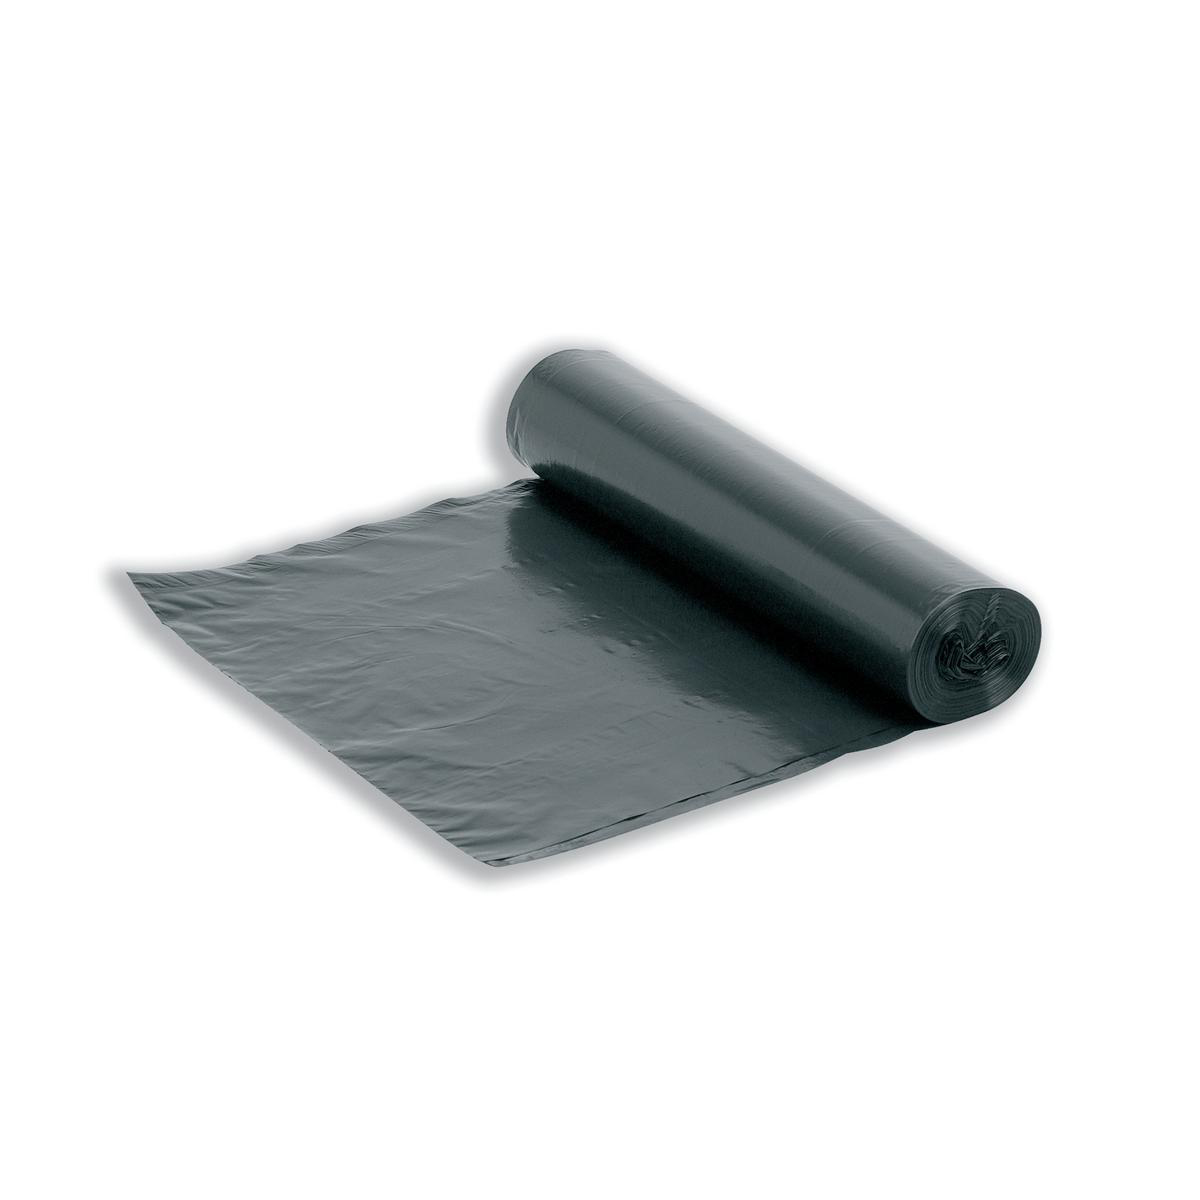 5 Star Facilities Bin Liners Medium/Heavy Duty Rolled 95 Litre Capacity W425/725xH840mm Black [Roll 20]